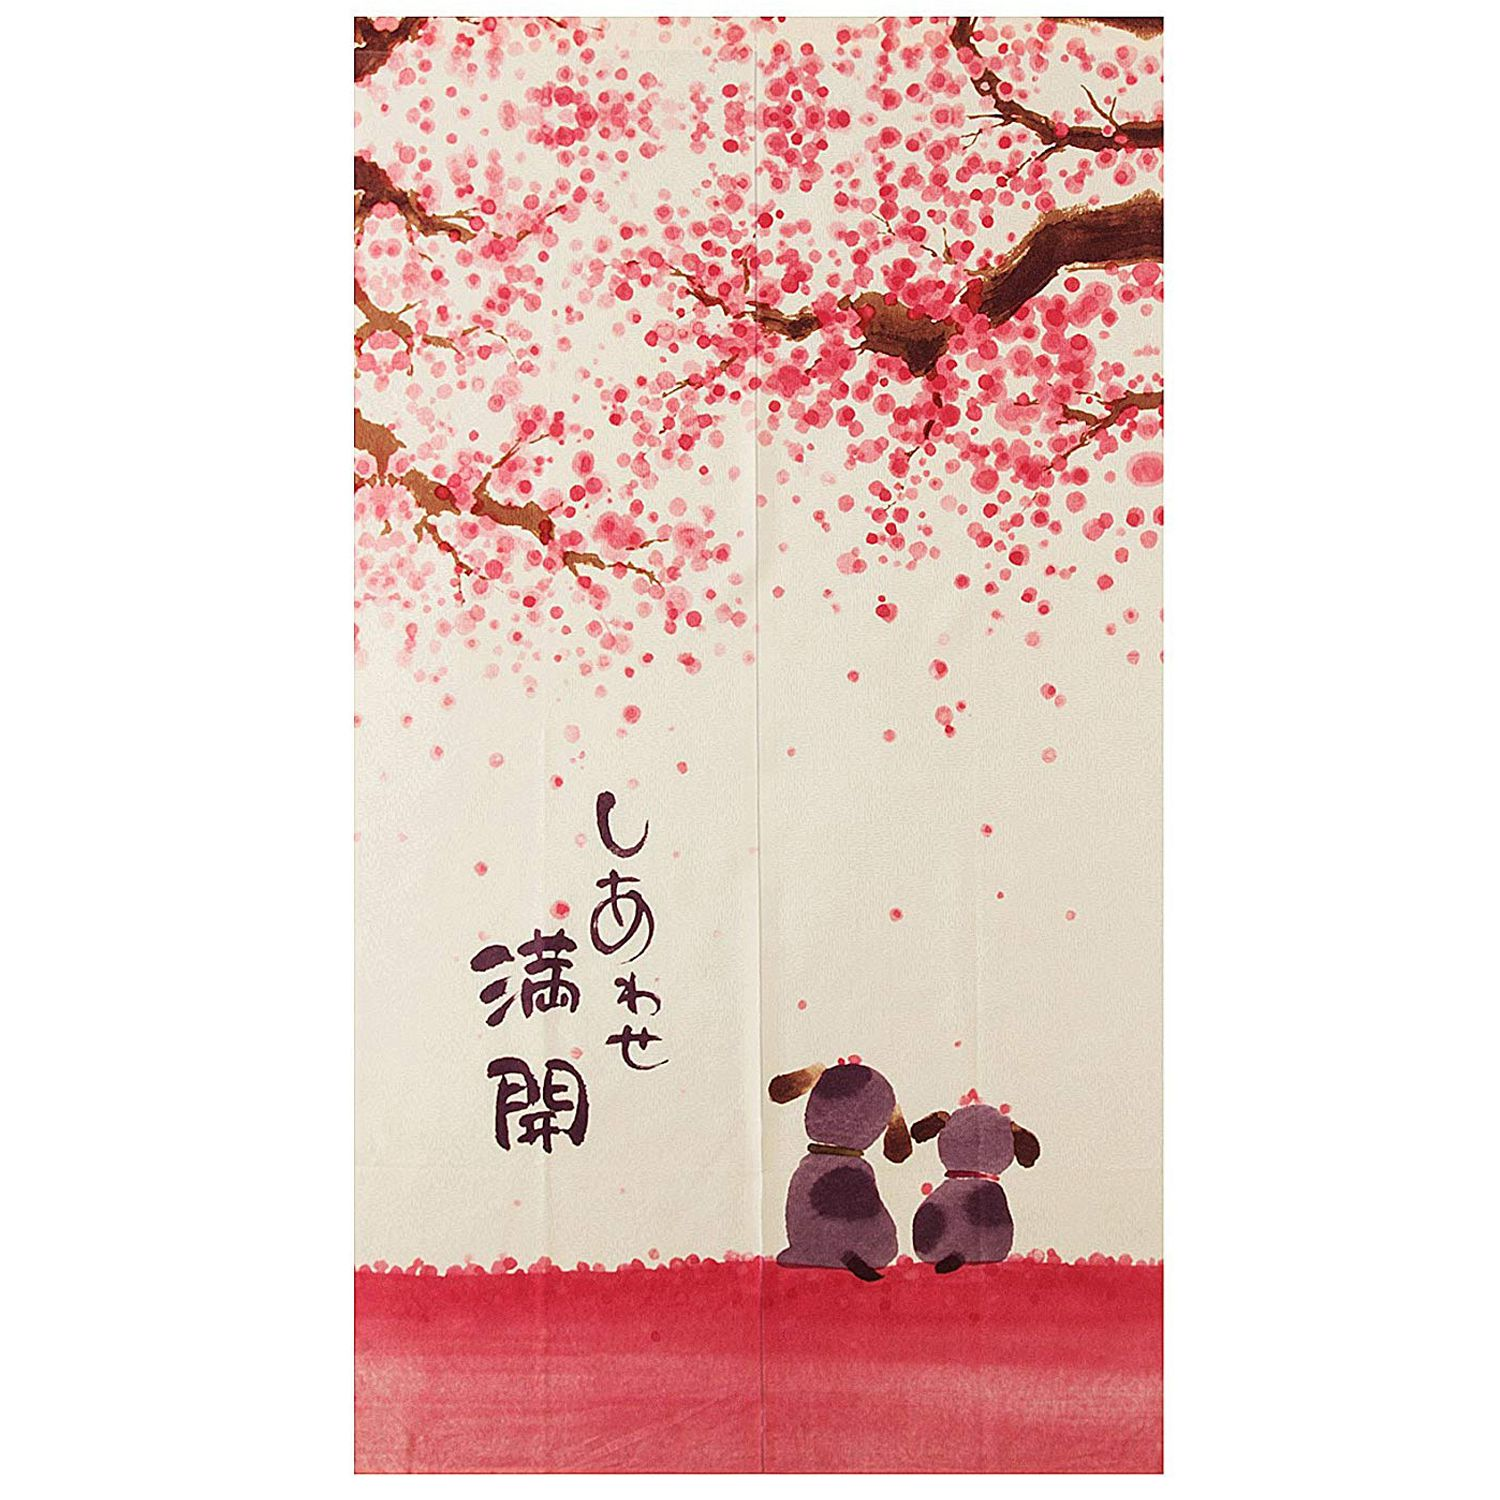 ABSS-Japanese Style Doorway Curtain 85X150Cm Happy Dogs Cherry Blossom